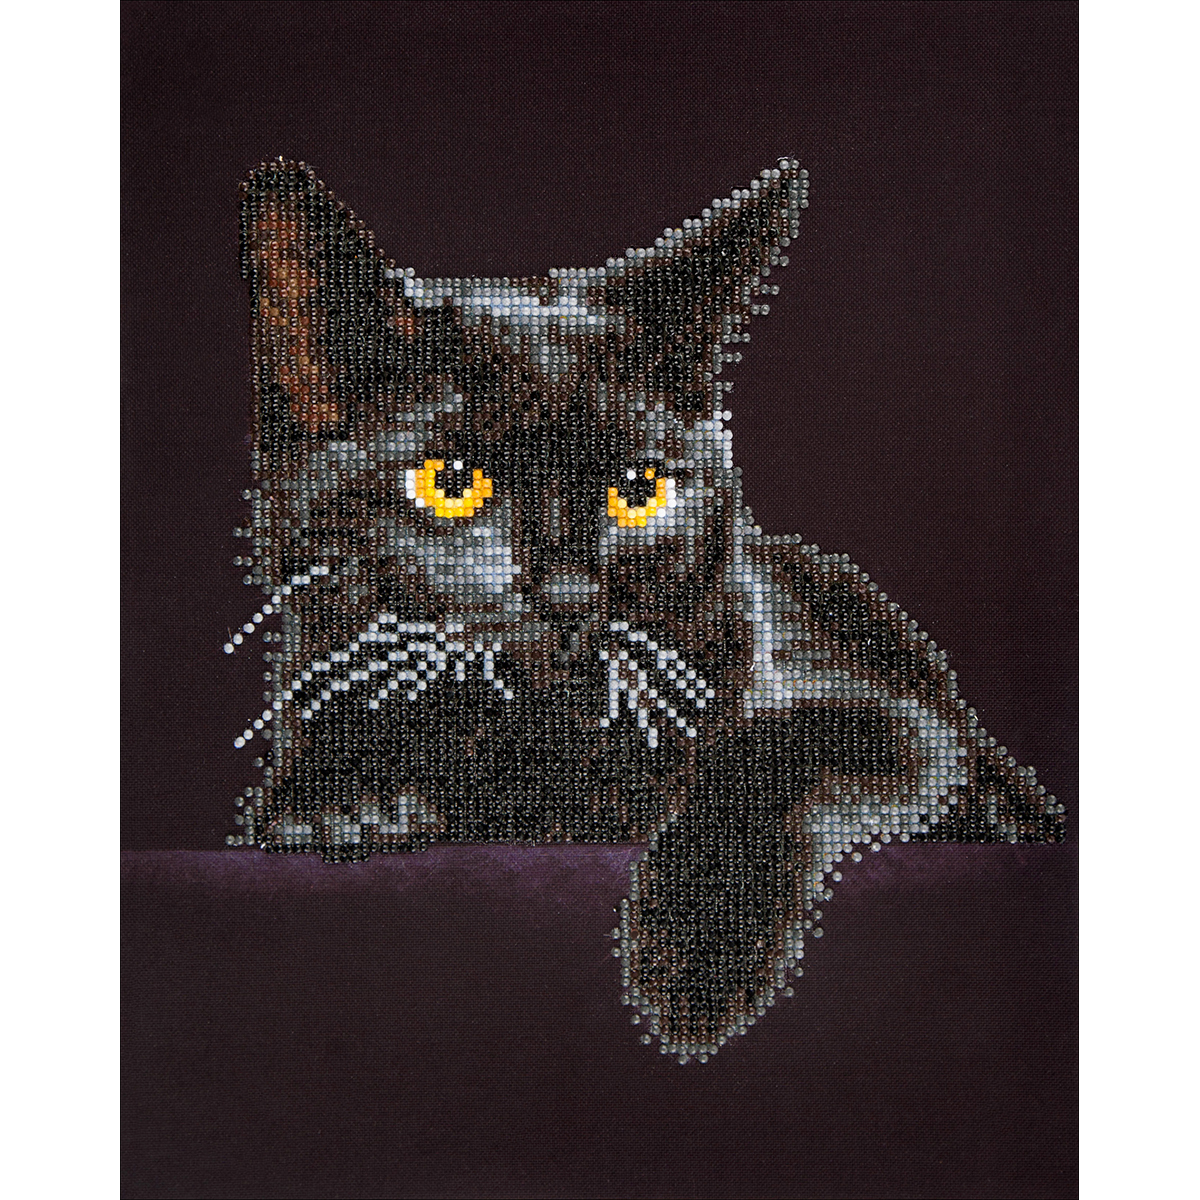 Diamond Dotz Diamond Embroidery Facet Art Kit 13.75X17-Midnight Cat